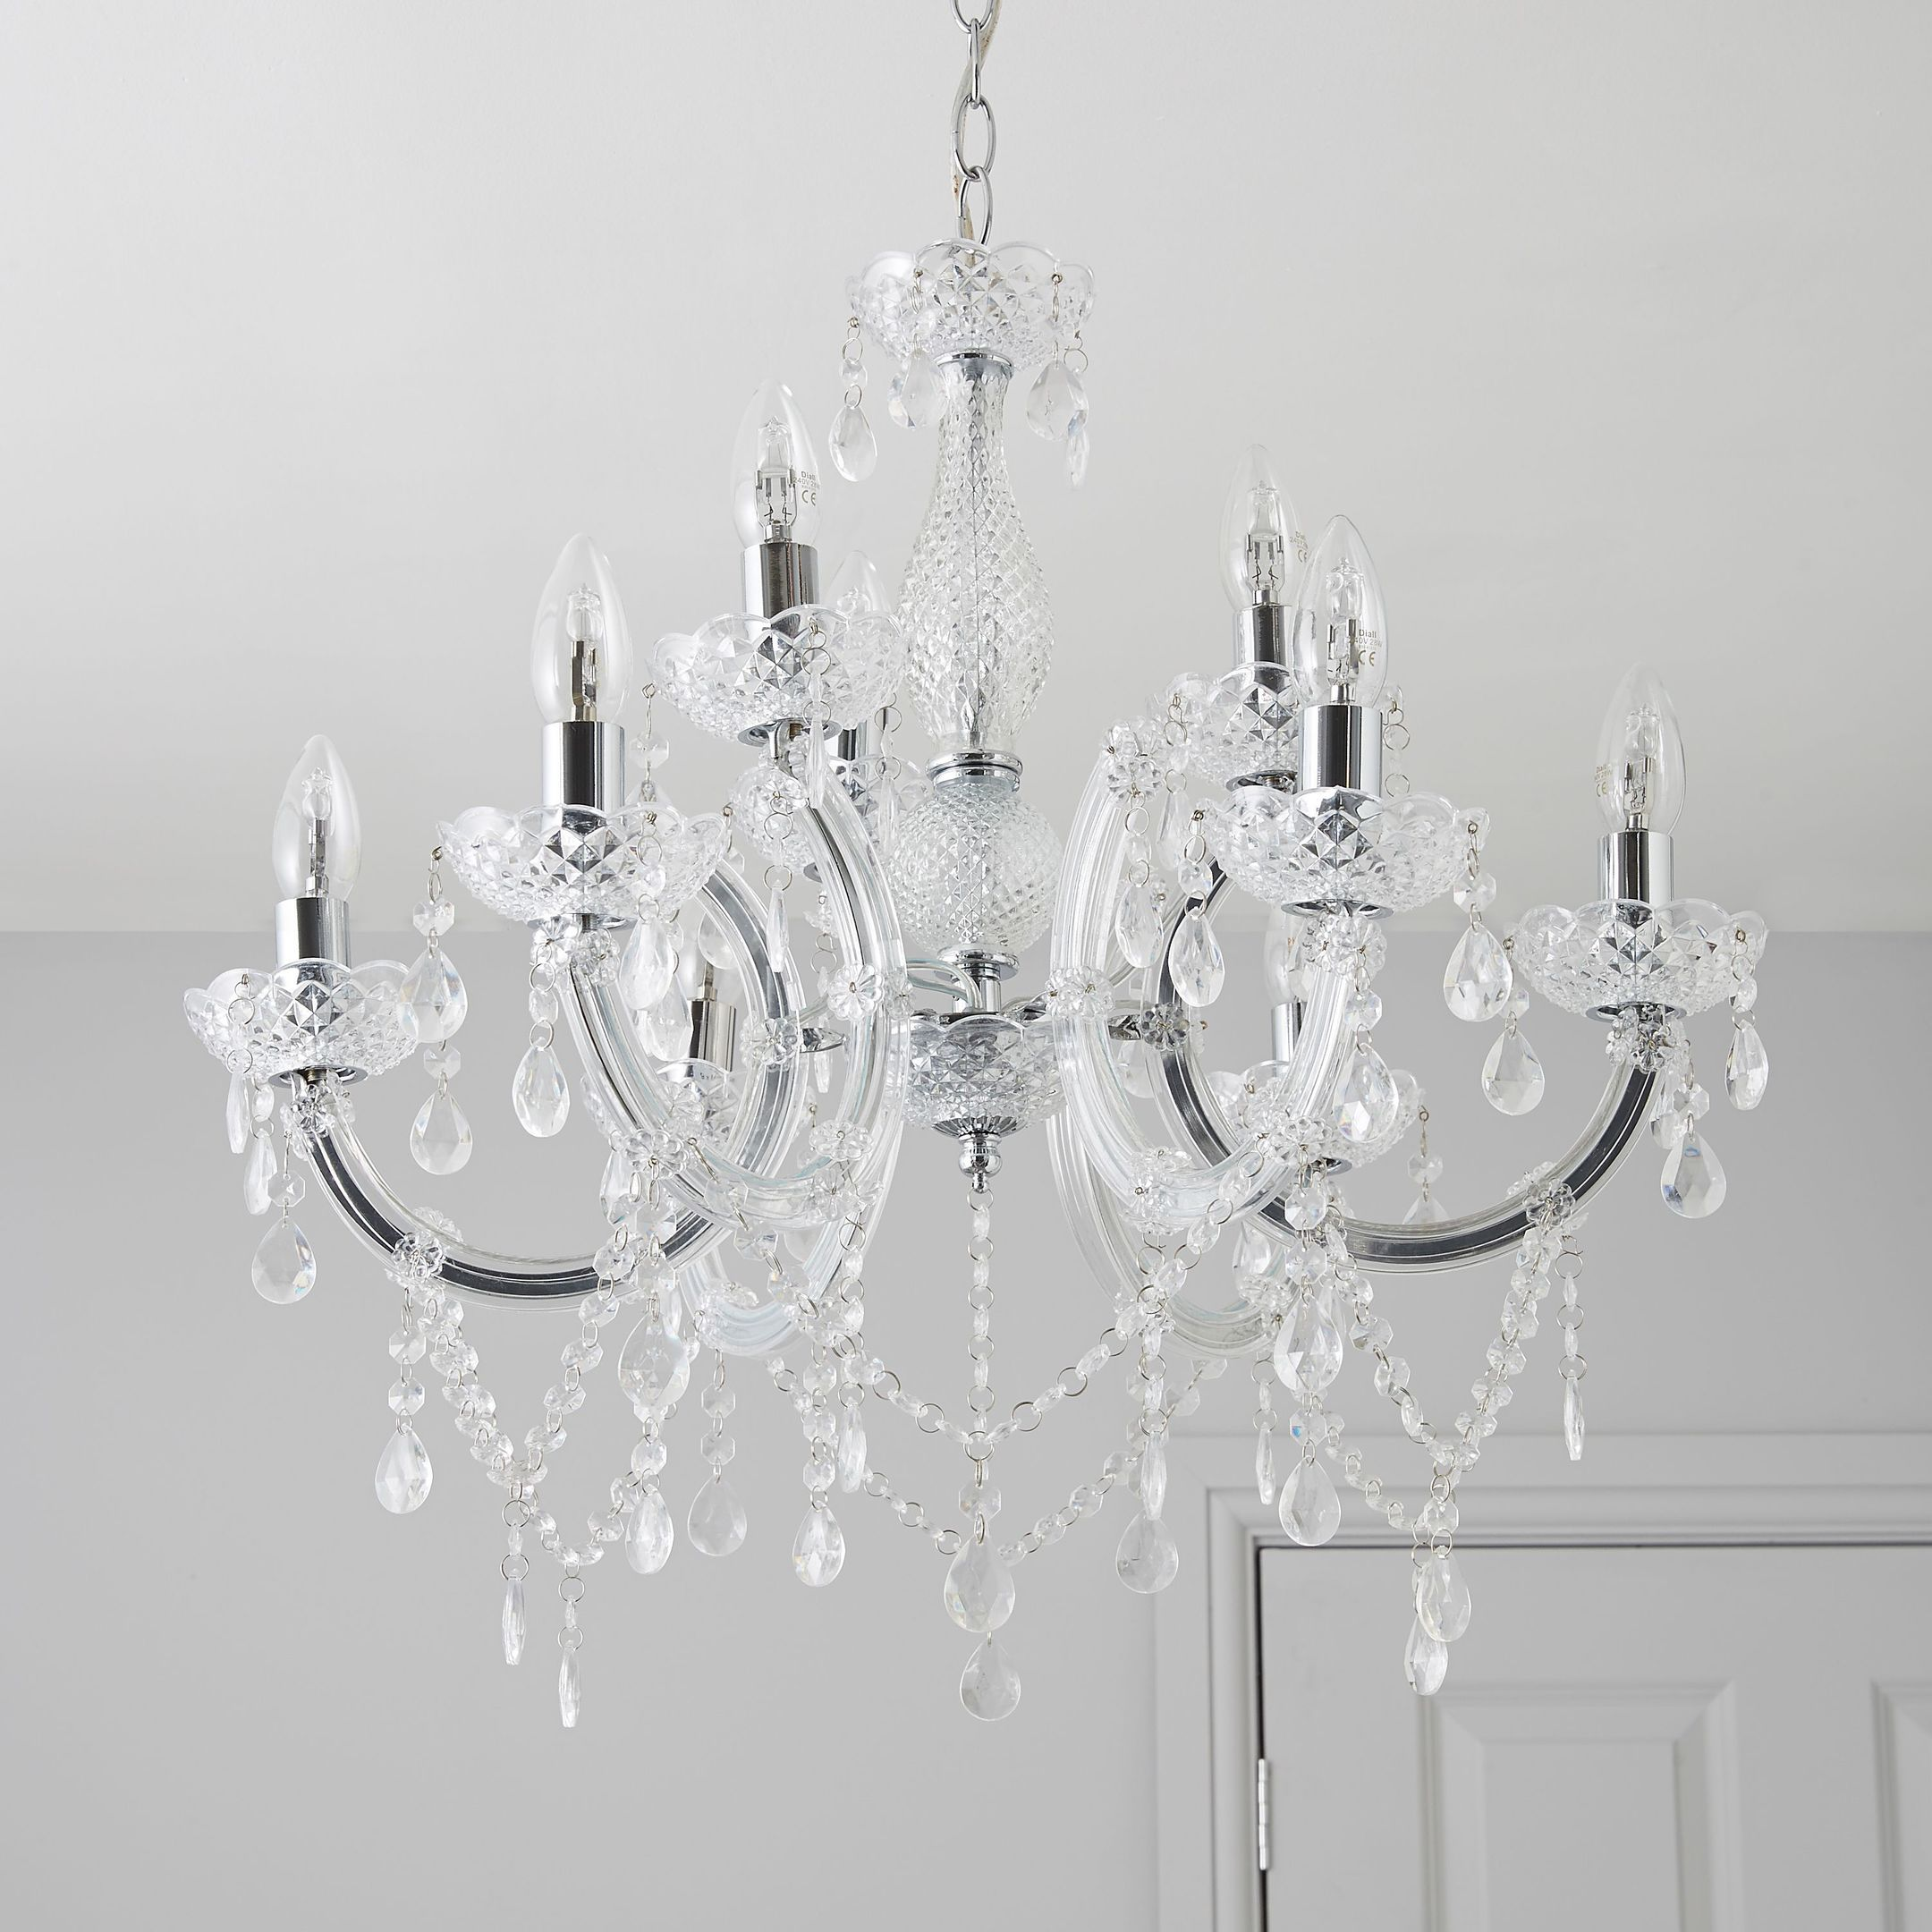 Chandelier Lighting B Q: Add Statement Chandeliers To Your North-east Home To Bring